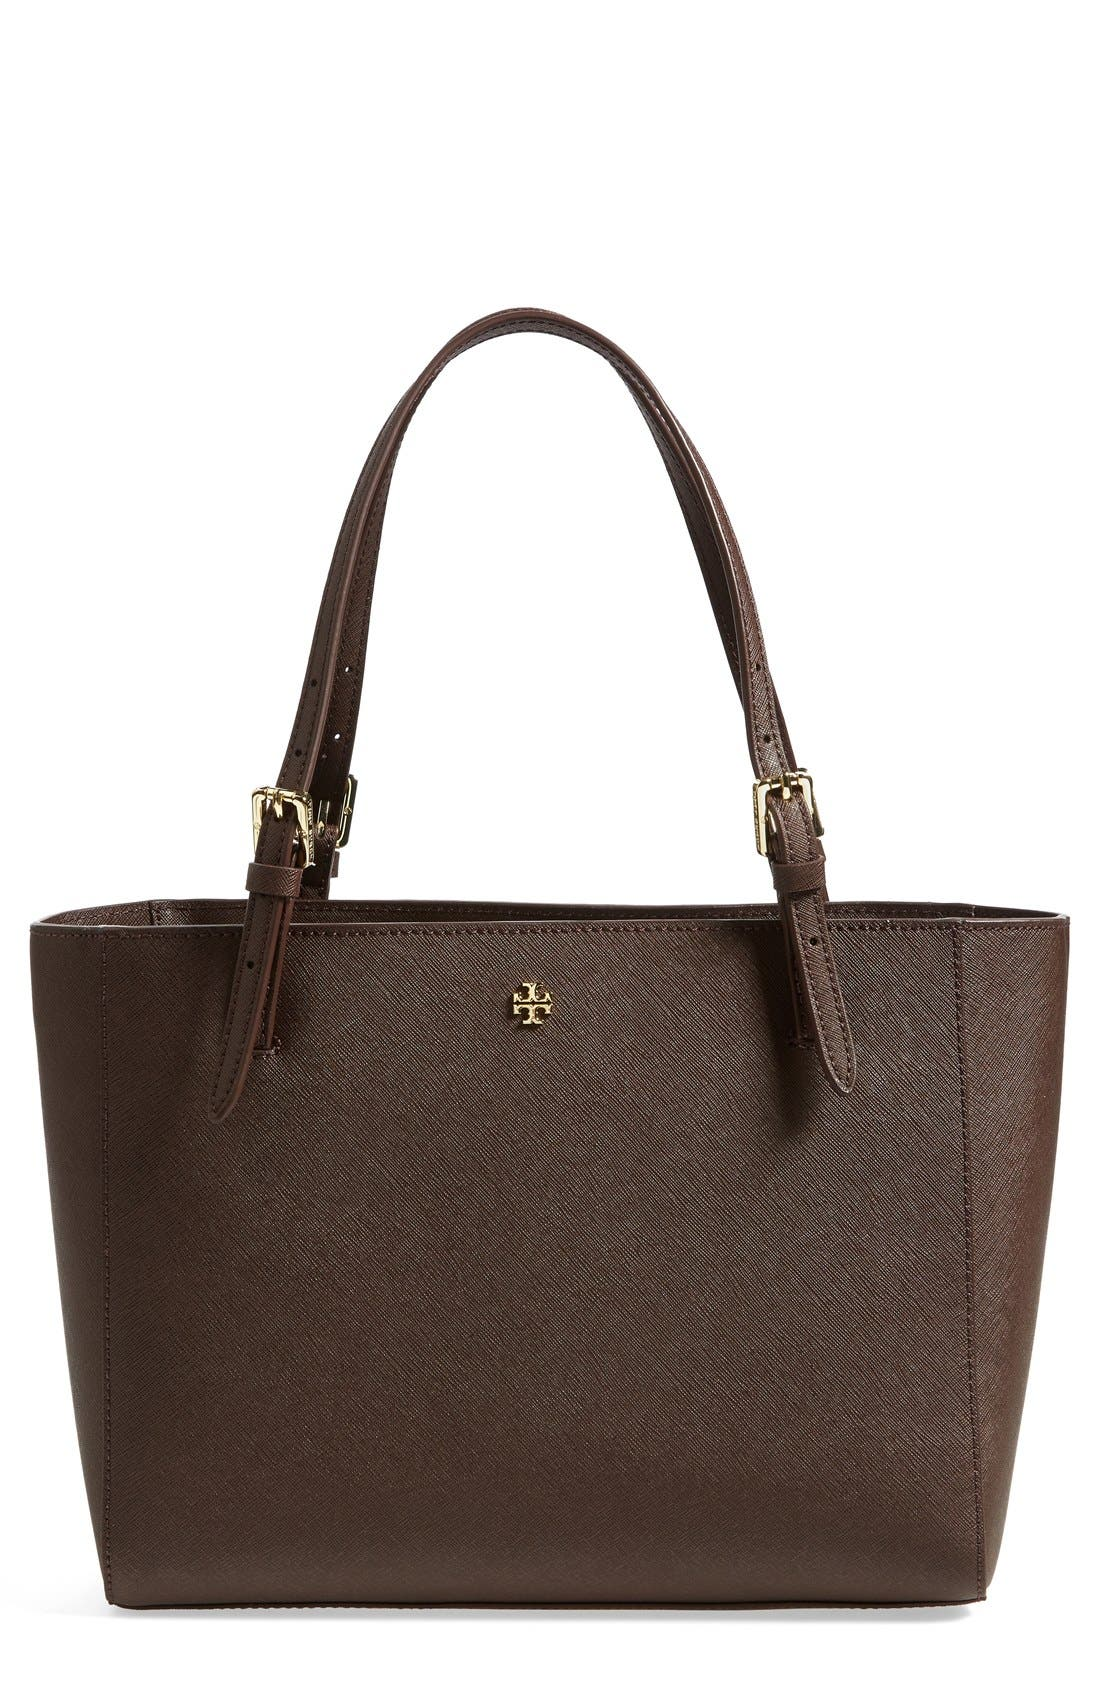 'Small York' Saffiano Leather Buckle Tote,                             Main thumbnail 6, color,